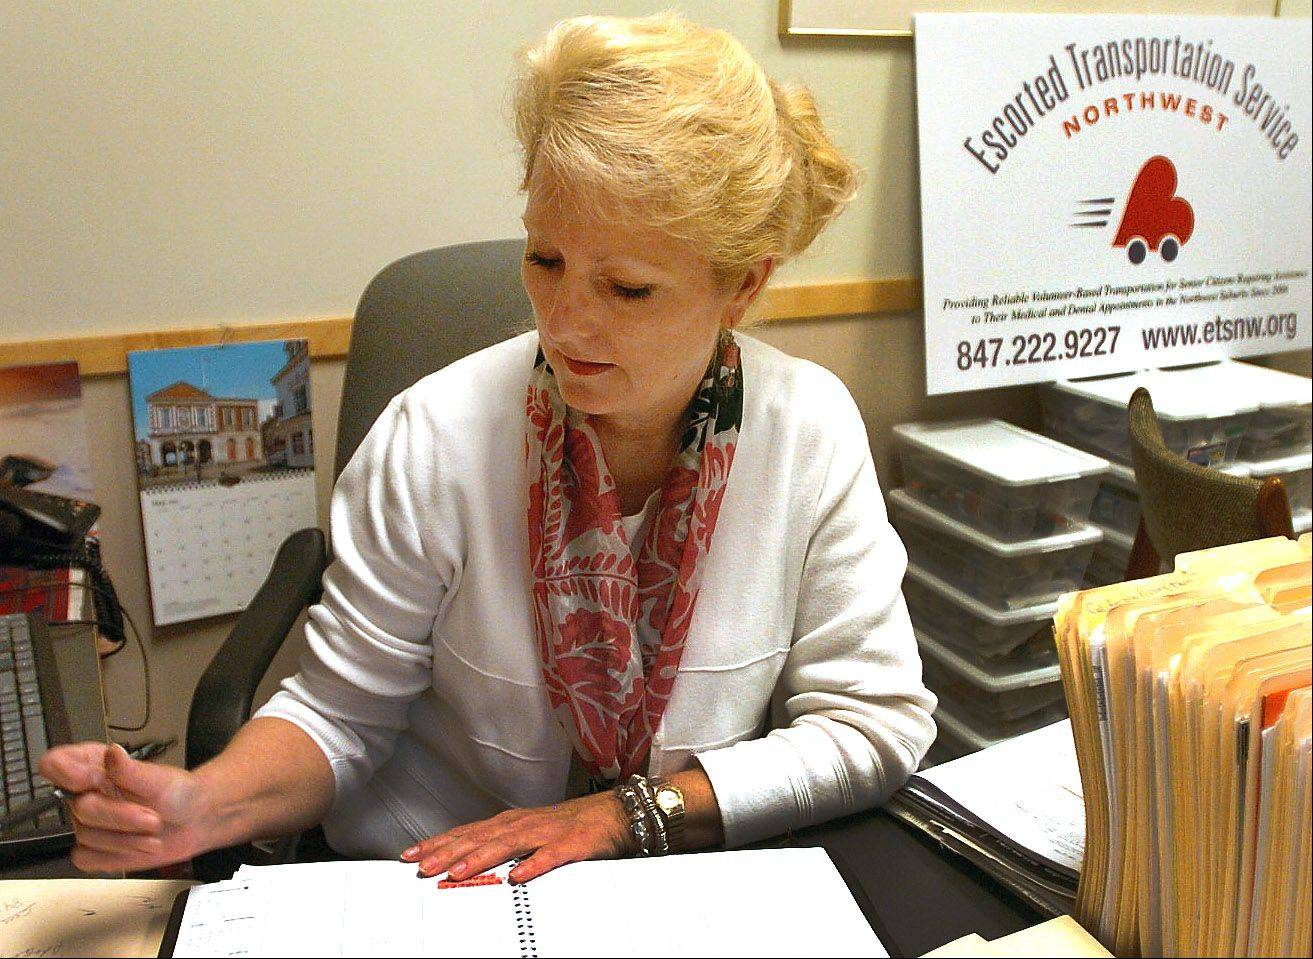 Lynndah Easterwood Lahey, executive director for Escorted Transportation Service Northwest, works on a schedule in her office at the Arlington Heights Senior Center.